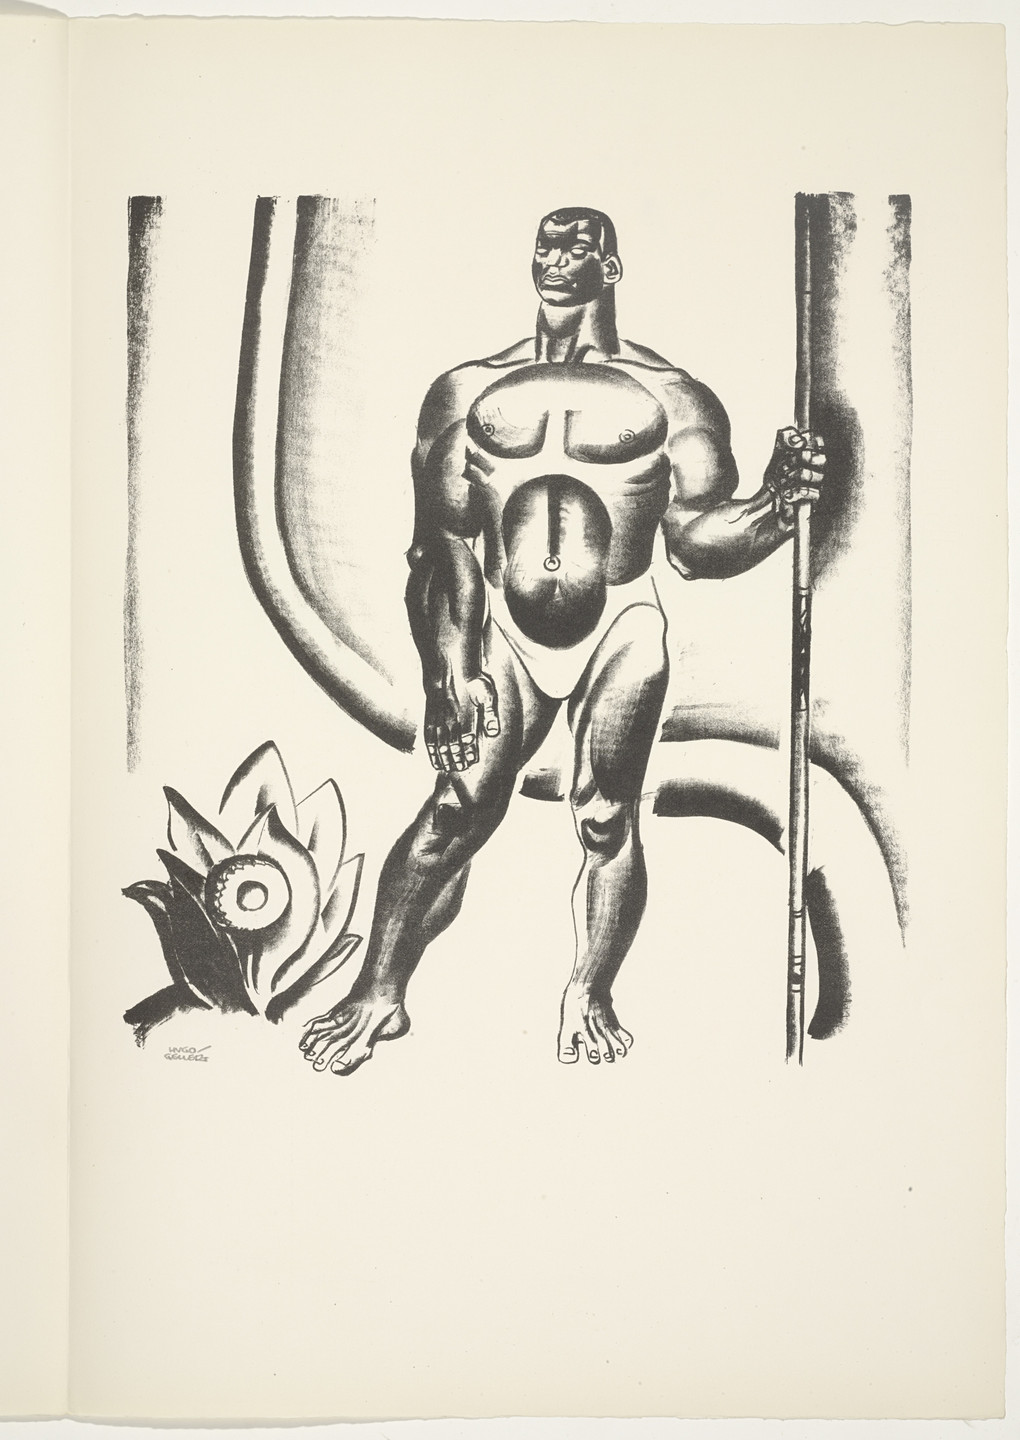 Hugo Gellert. Plate (folio 42) from 'Capital' in Pictures. 1933